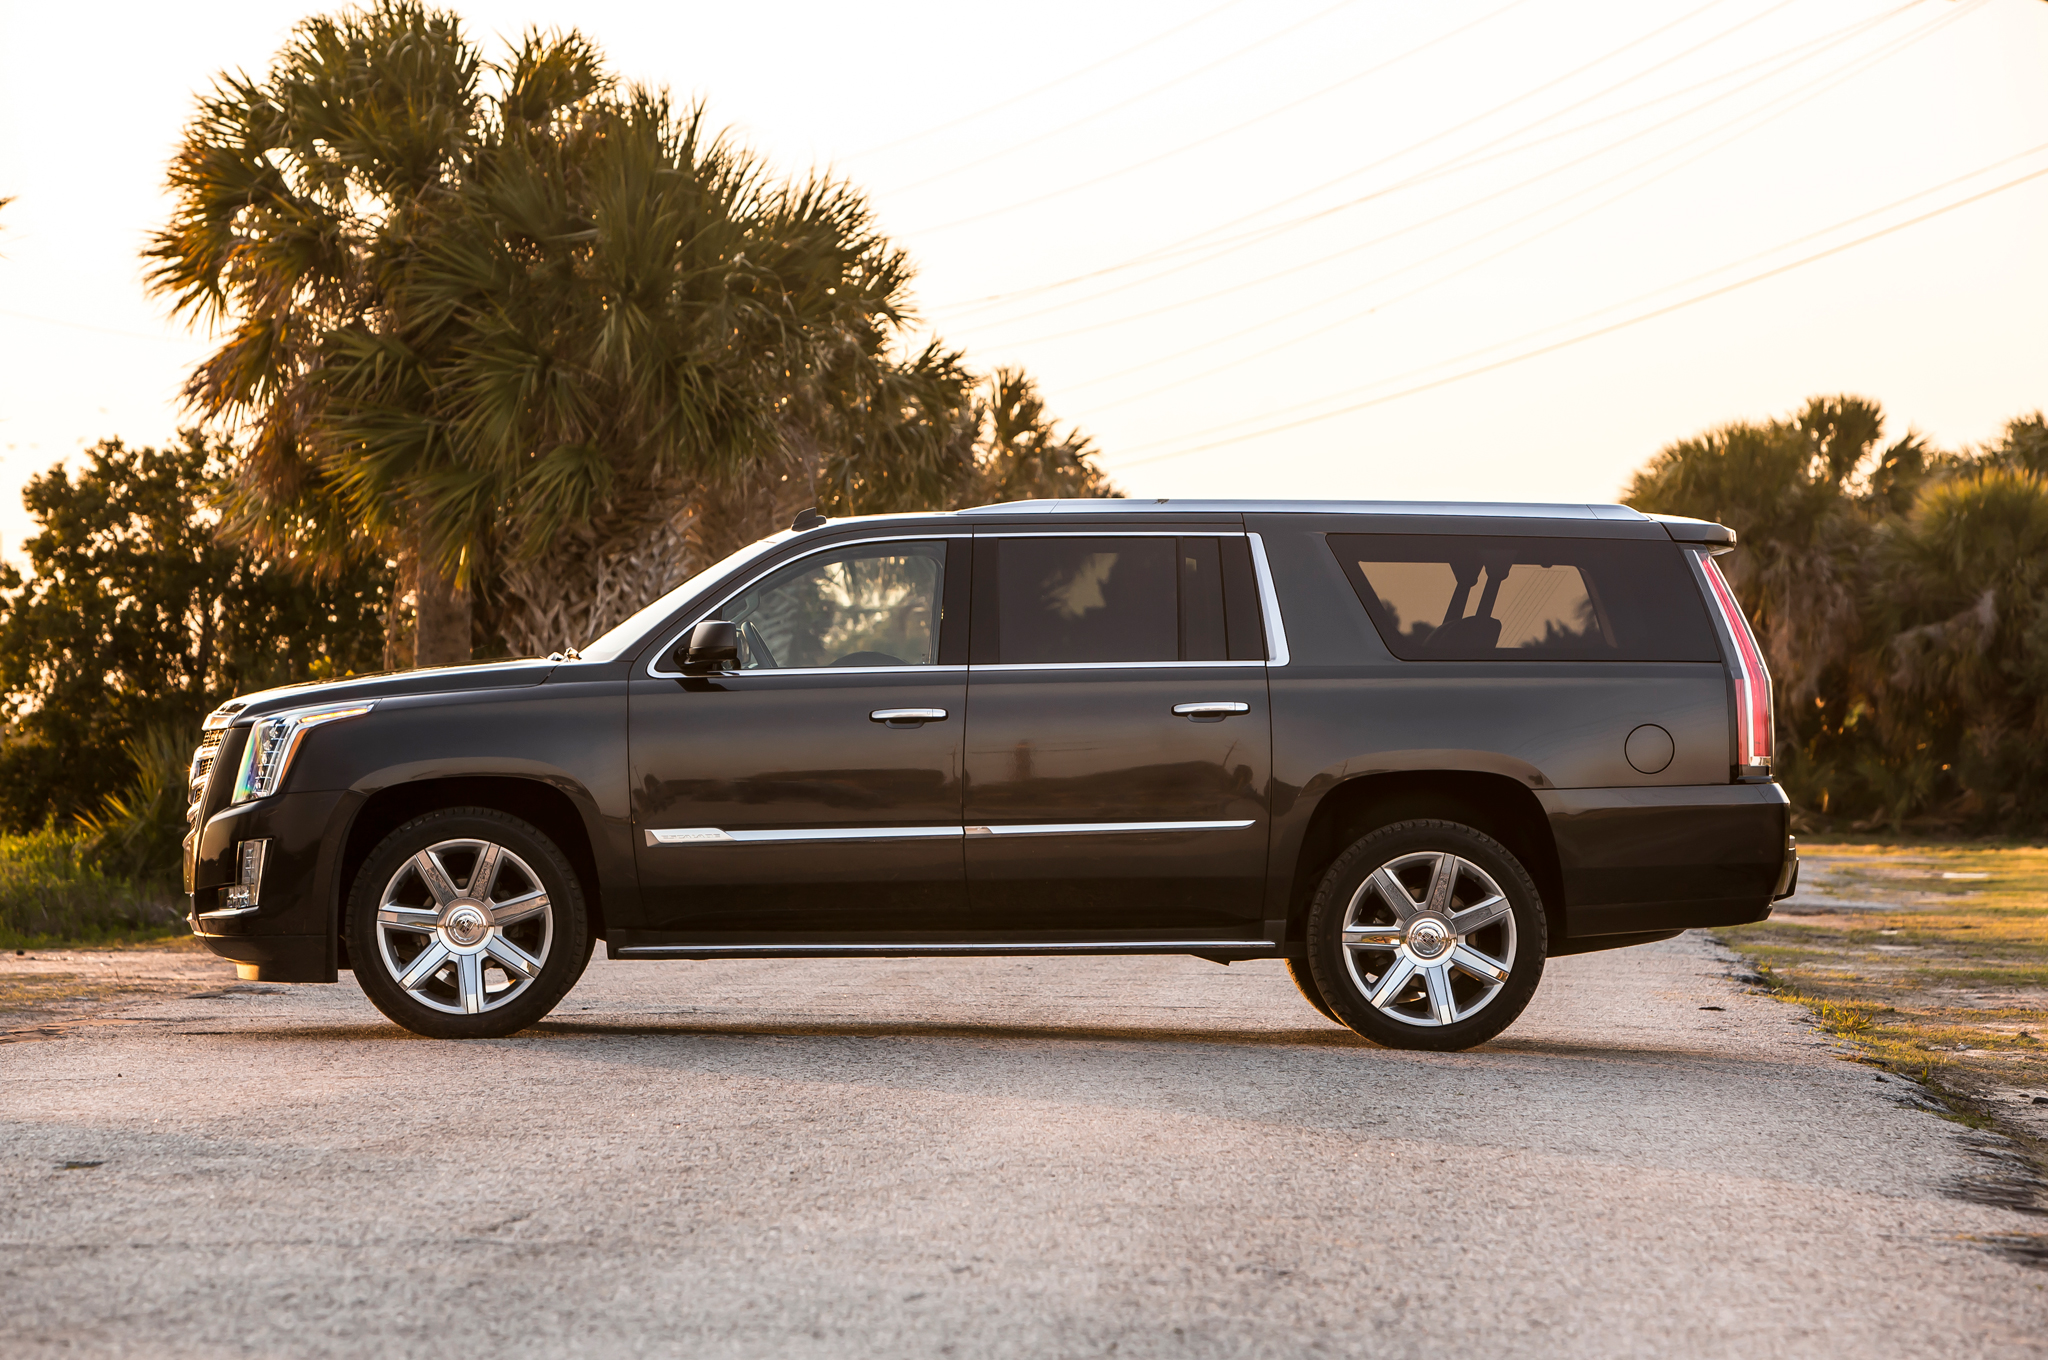 2015 escalade esv 2 cadillac escalade esv 2015 3 cadillac escalade esv. Cars Review. Best American Auto & Cars Review